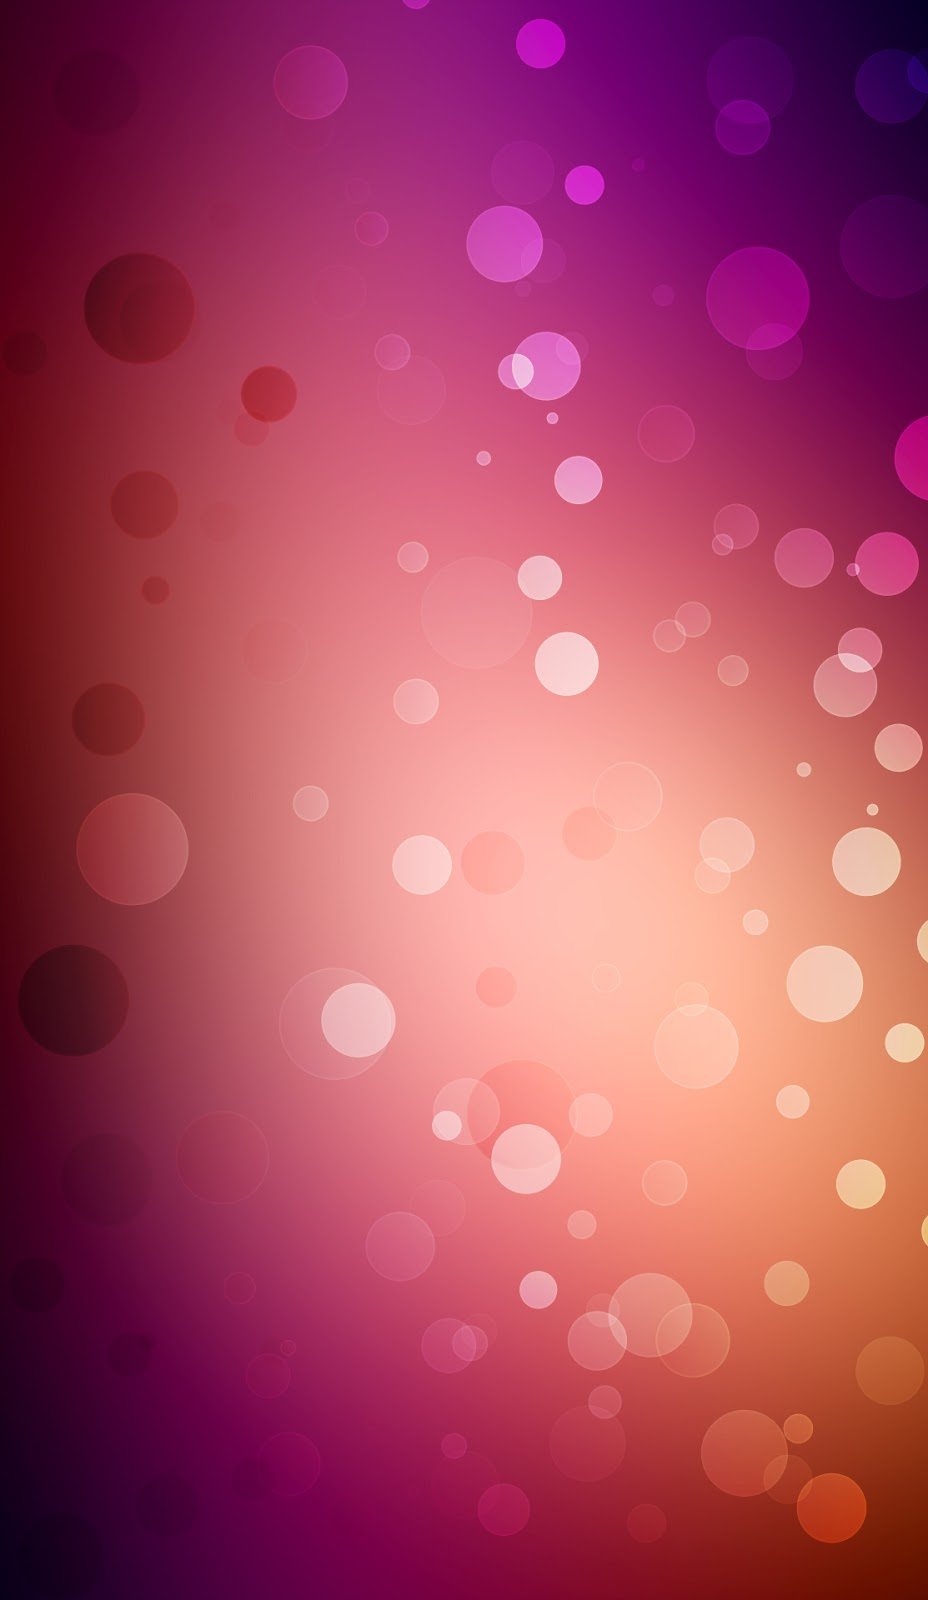 Free Download Abstract Circle HD Wallpapers for iPhone 5 ...